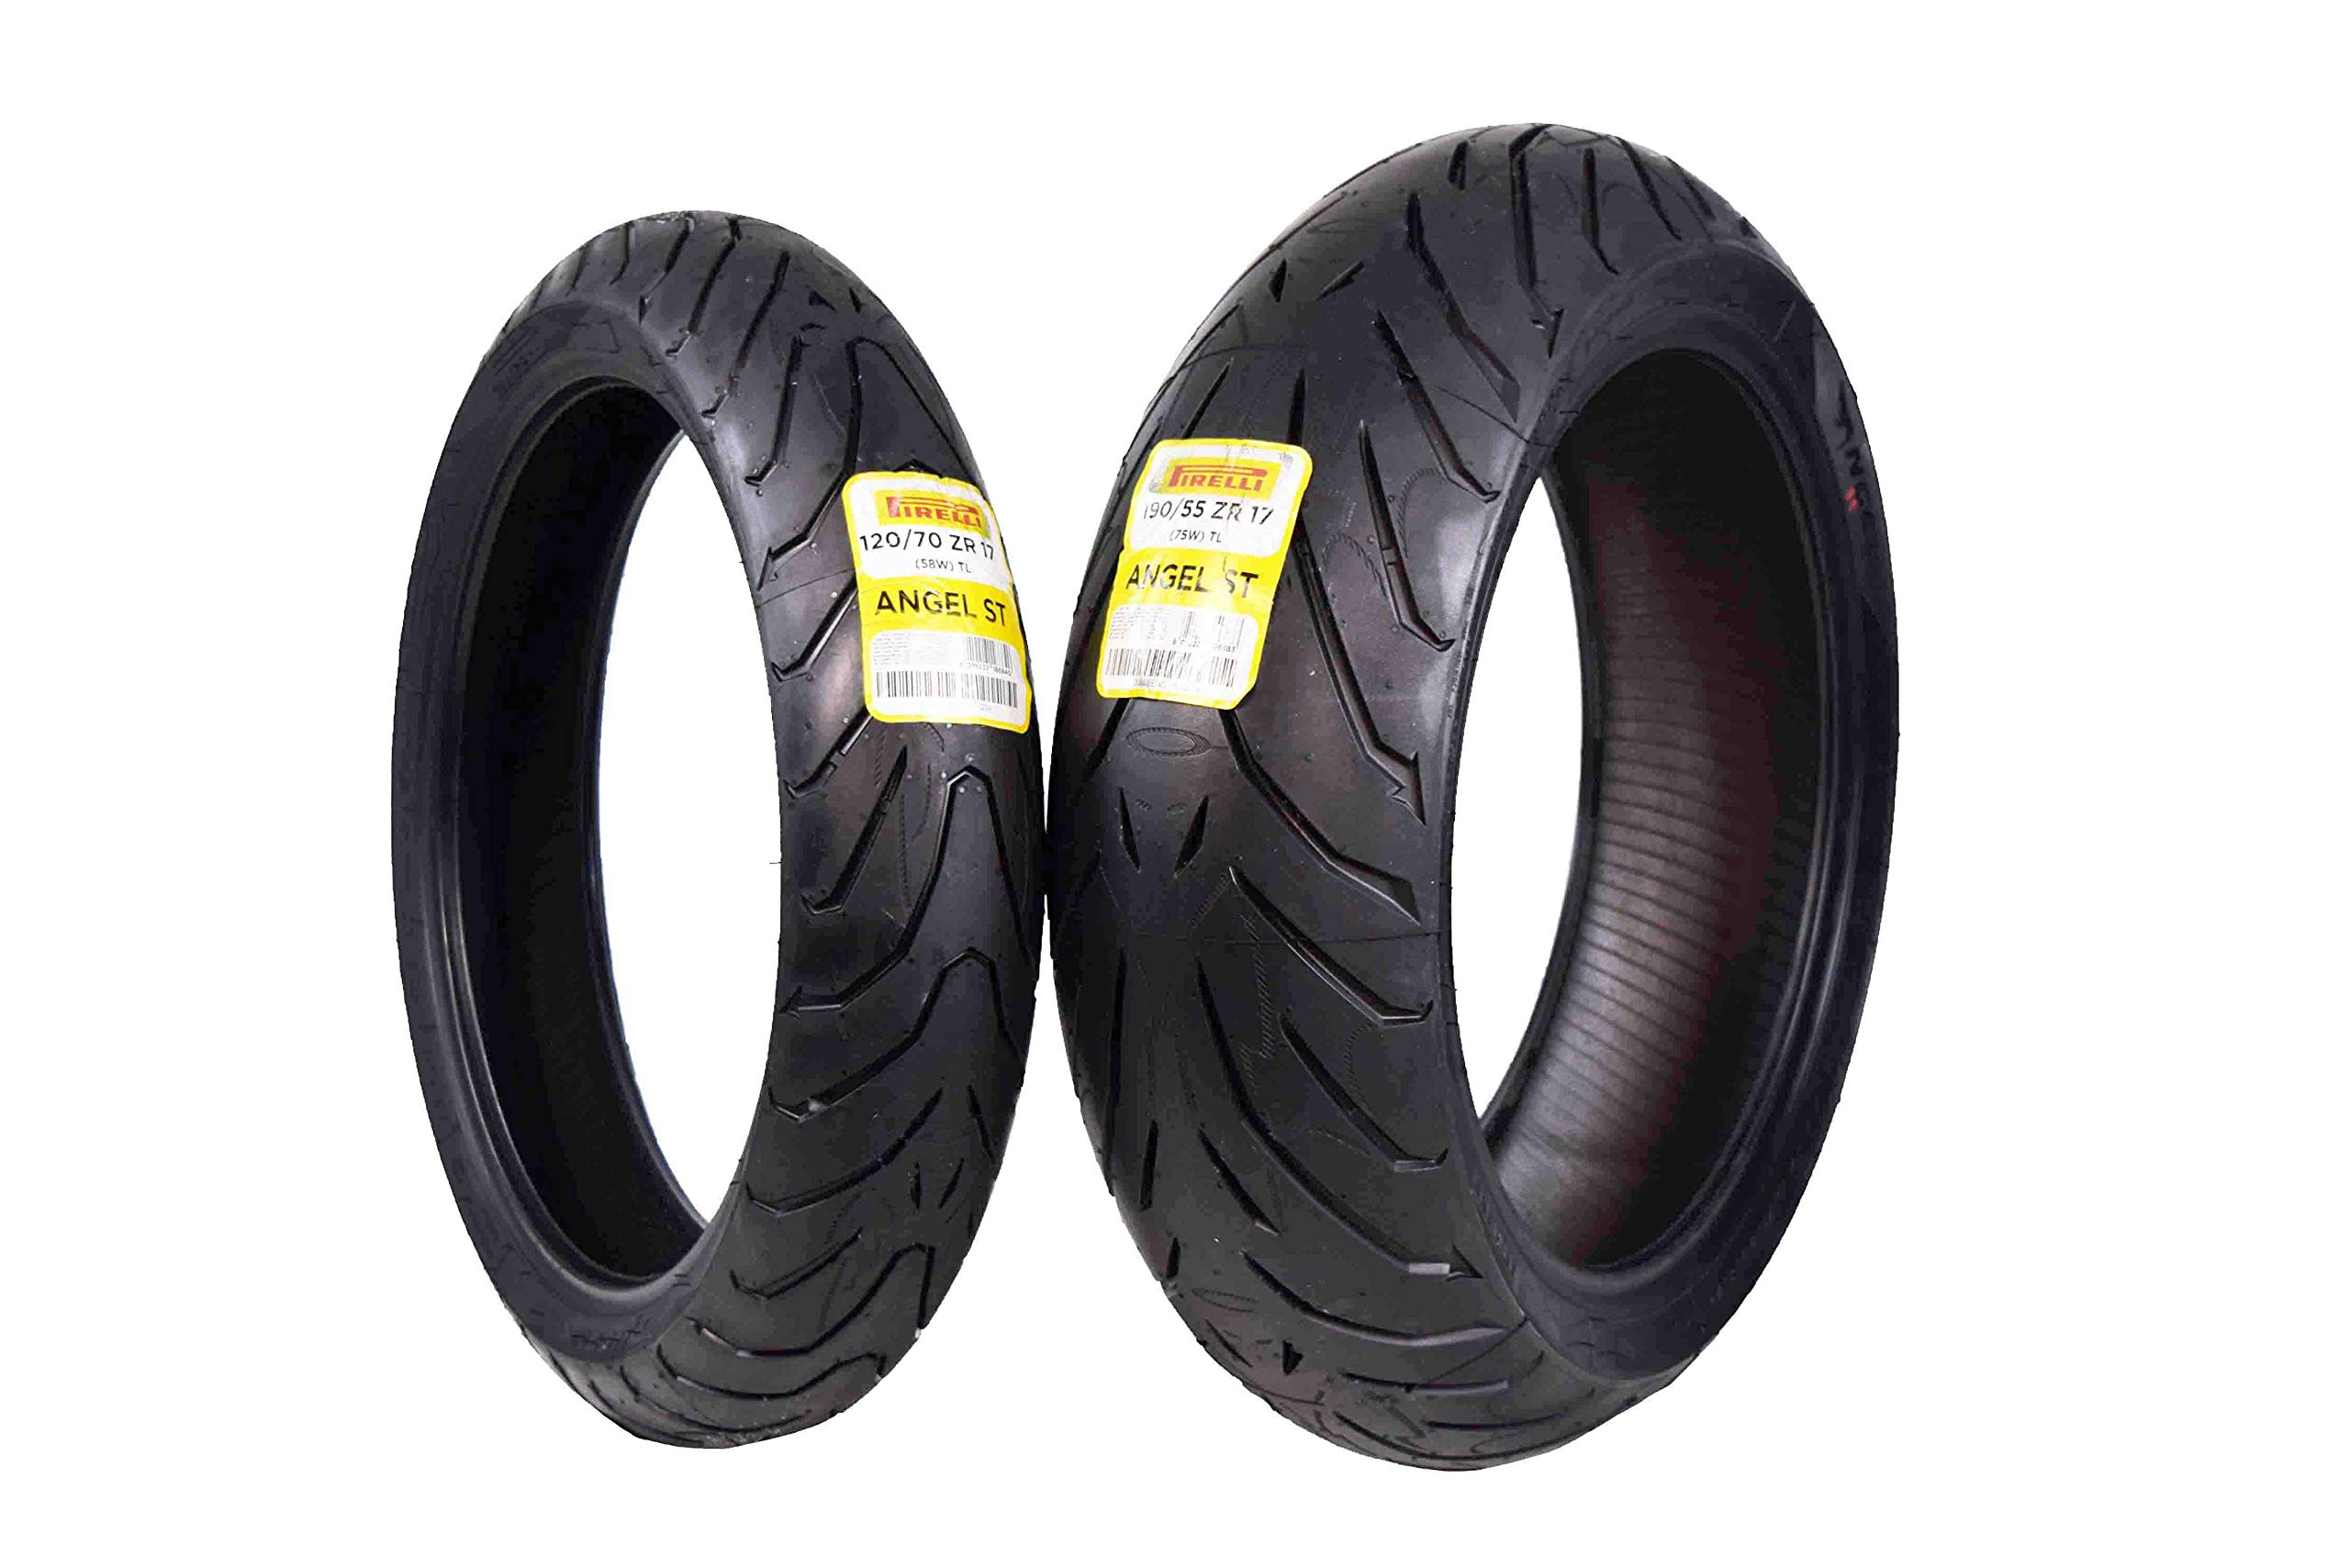 Pirelli Angel ST Rear Street Sport Touring Motorcycle Tires (1x Rear 190/55ZR17)